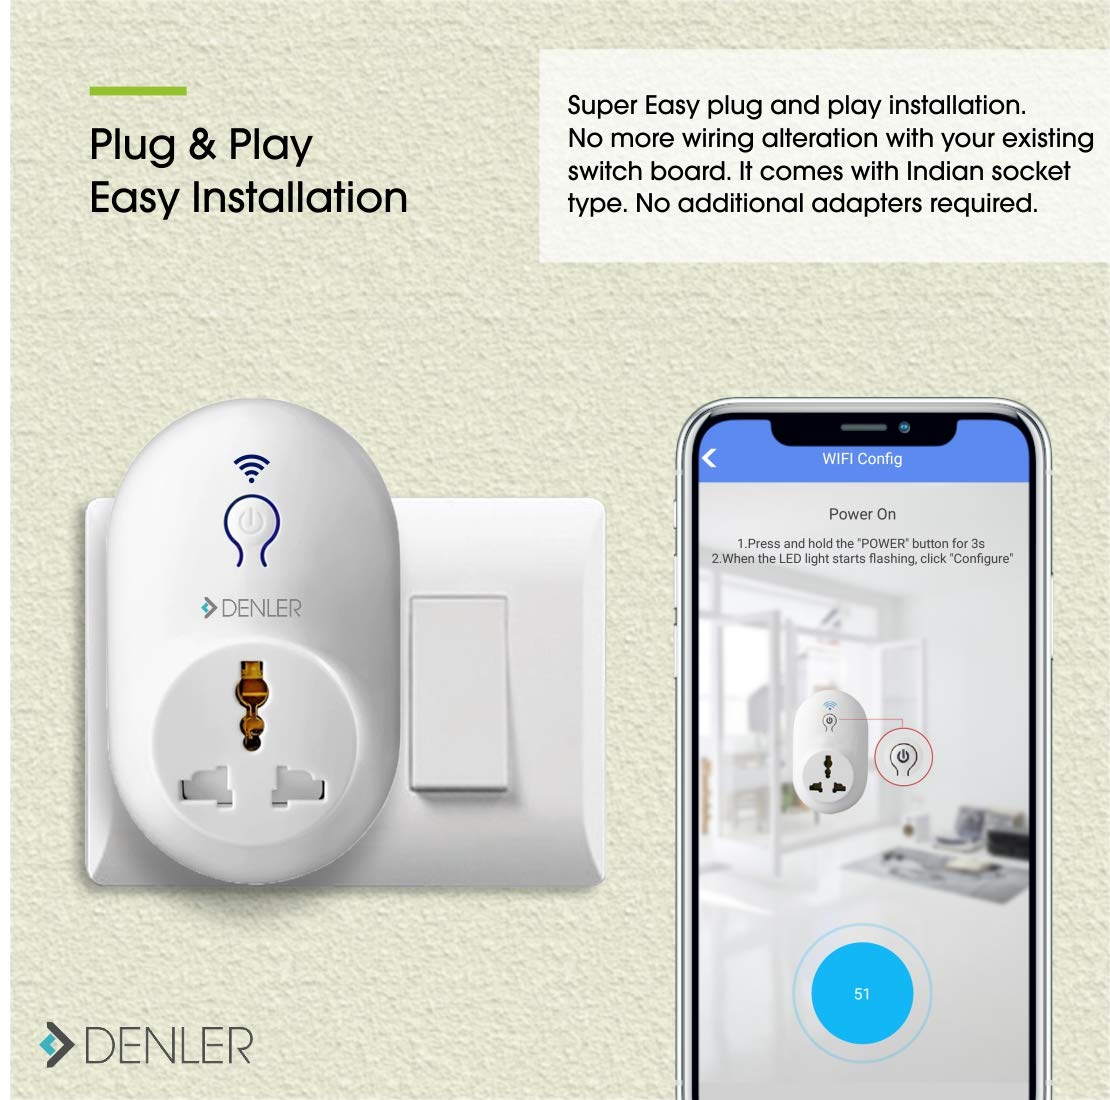 Buy Denlertm Smart Wifi Switch Plug Socket 2200w Home Automation No Wiring A Board Adapter Required Indian Online At Low Prices In India